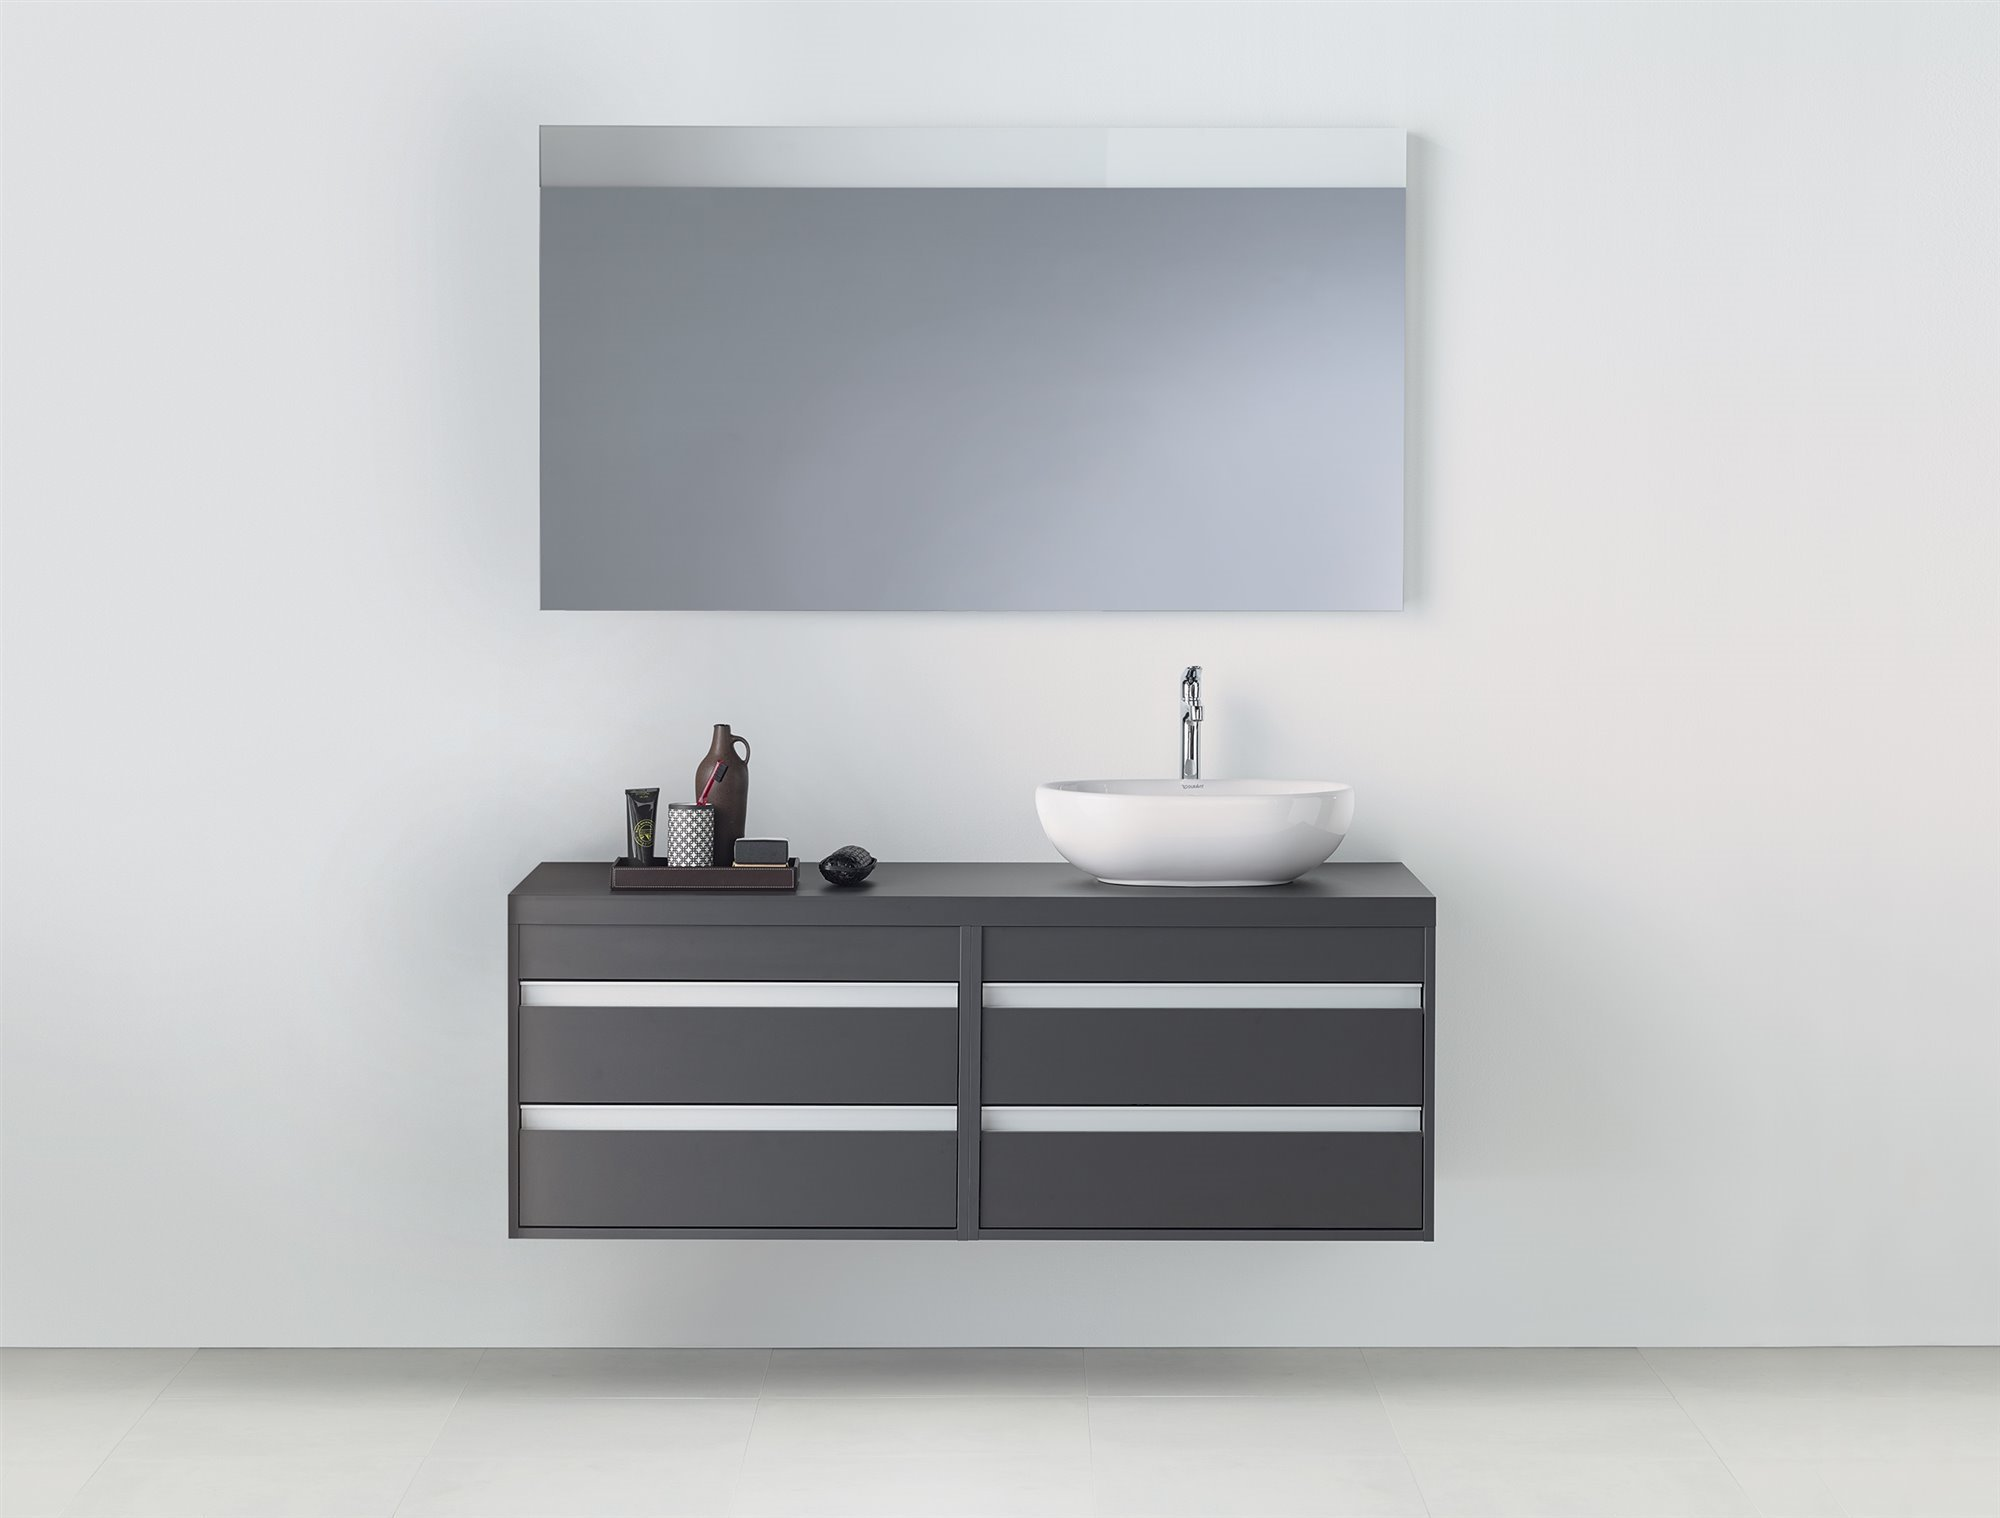 Encimeras baño Unified console system Ketho